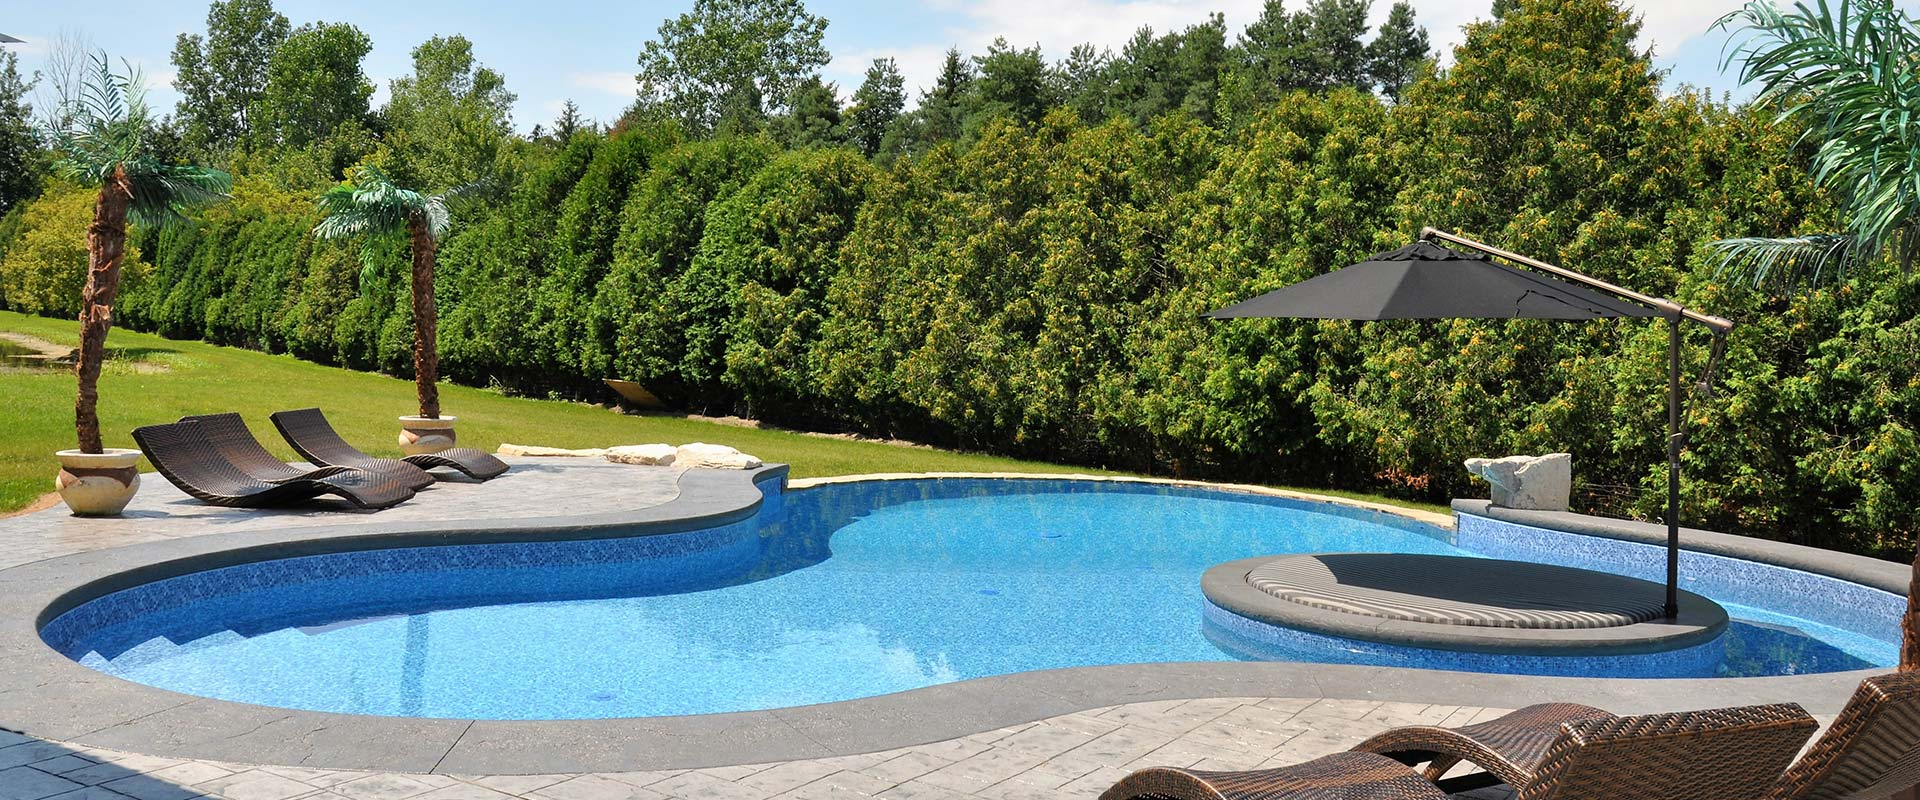 About Bluewater Pools Chatham Pioneer Family Pools